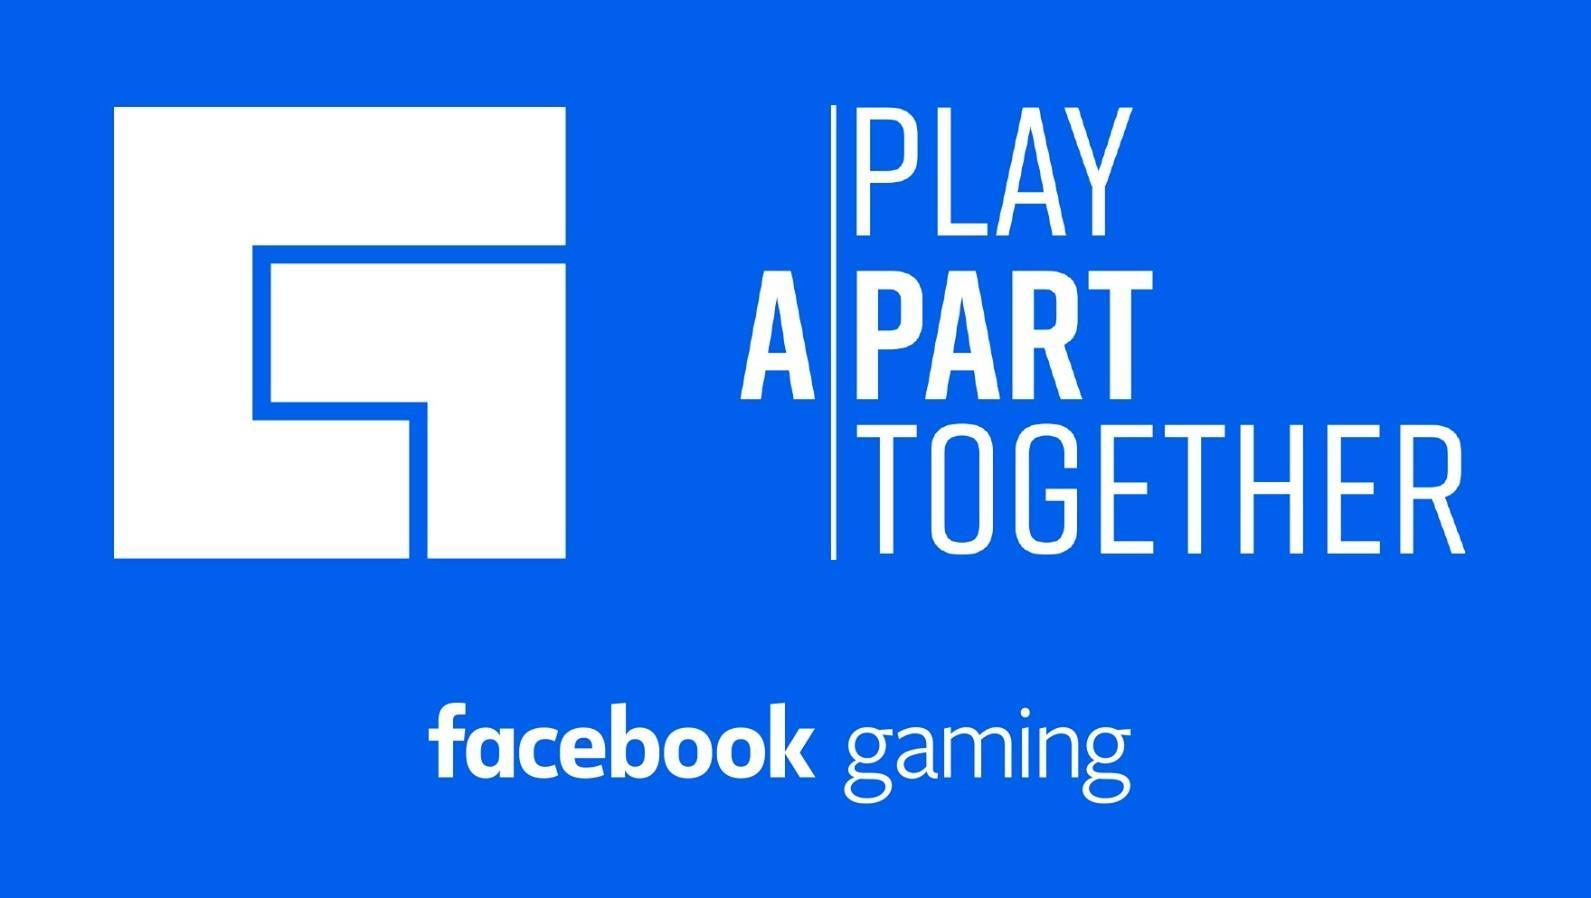 Facebook launches Facebook Gaming app in push to beat Twitch - GENERAL - News - WIN.gg